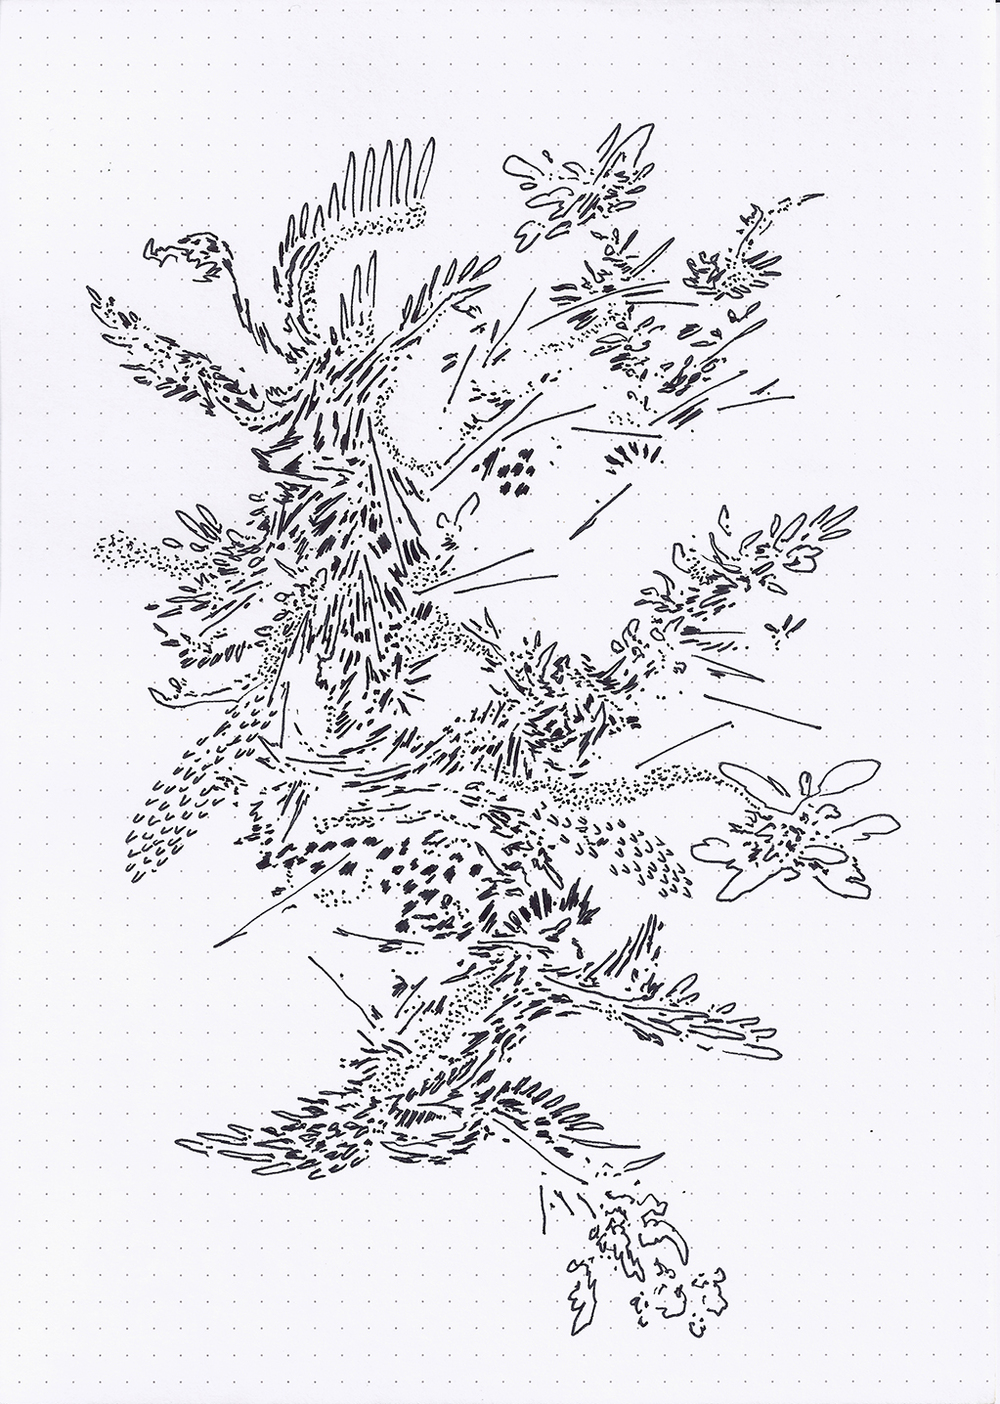 Field Drawing 12 (175dpi).jpg